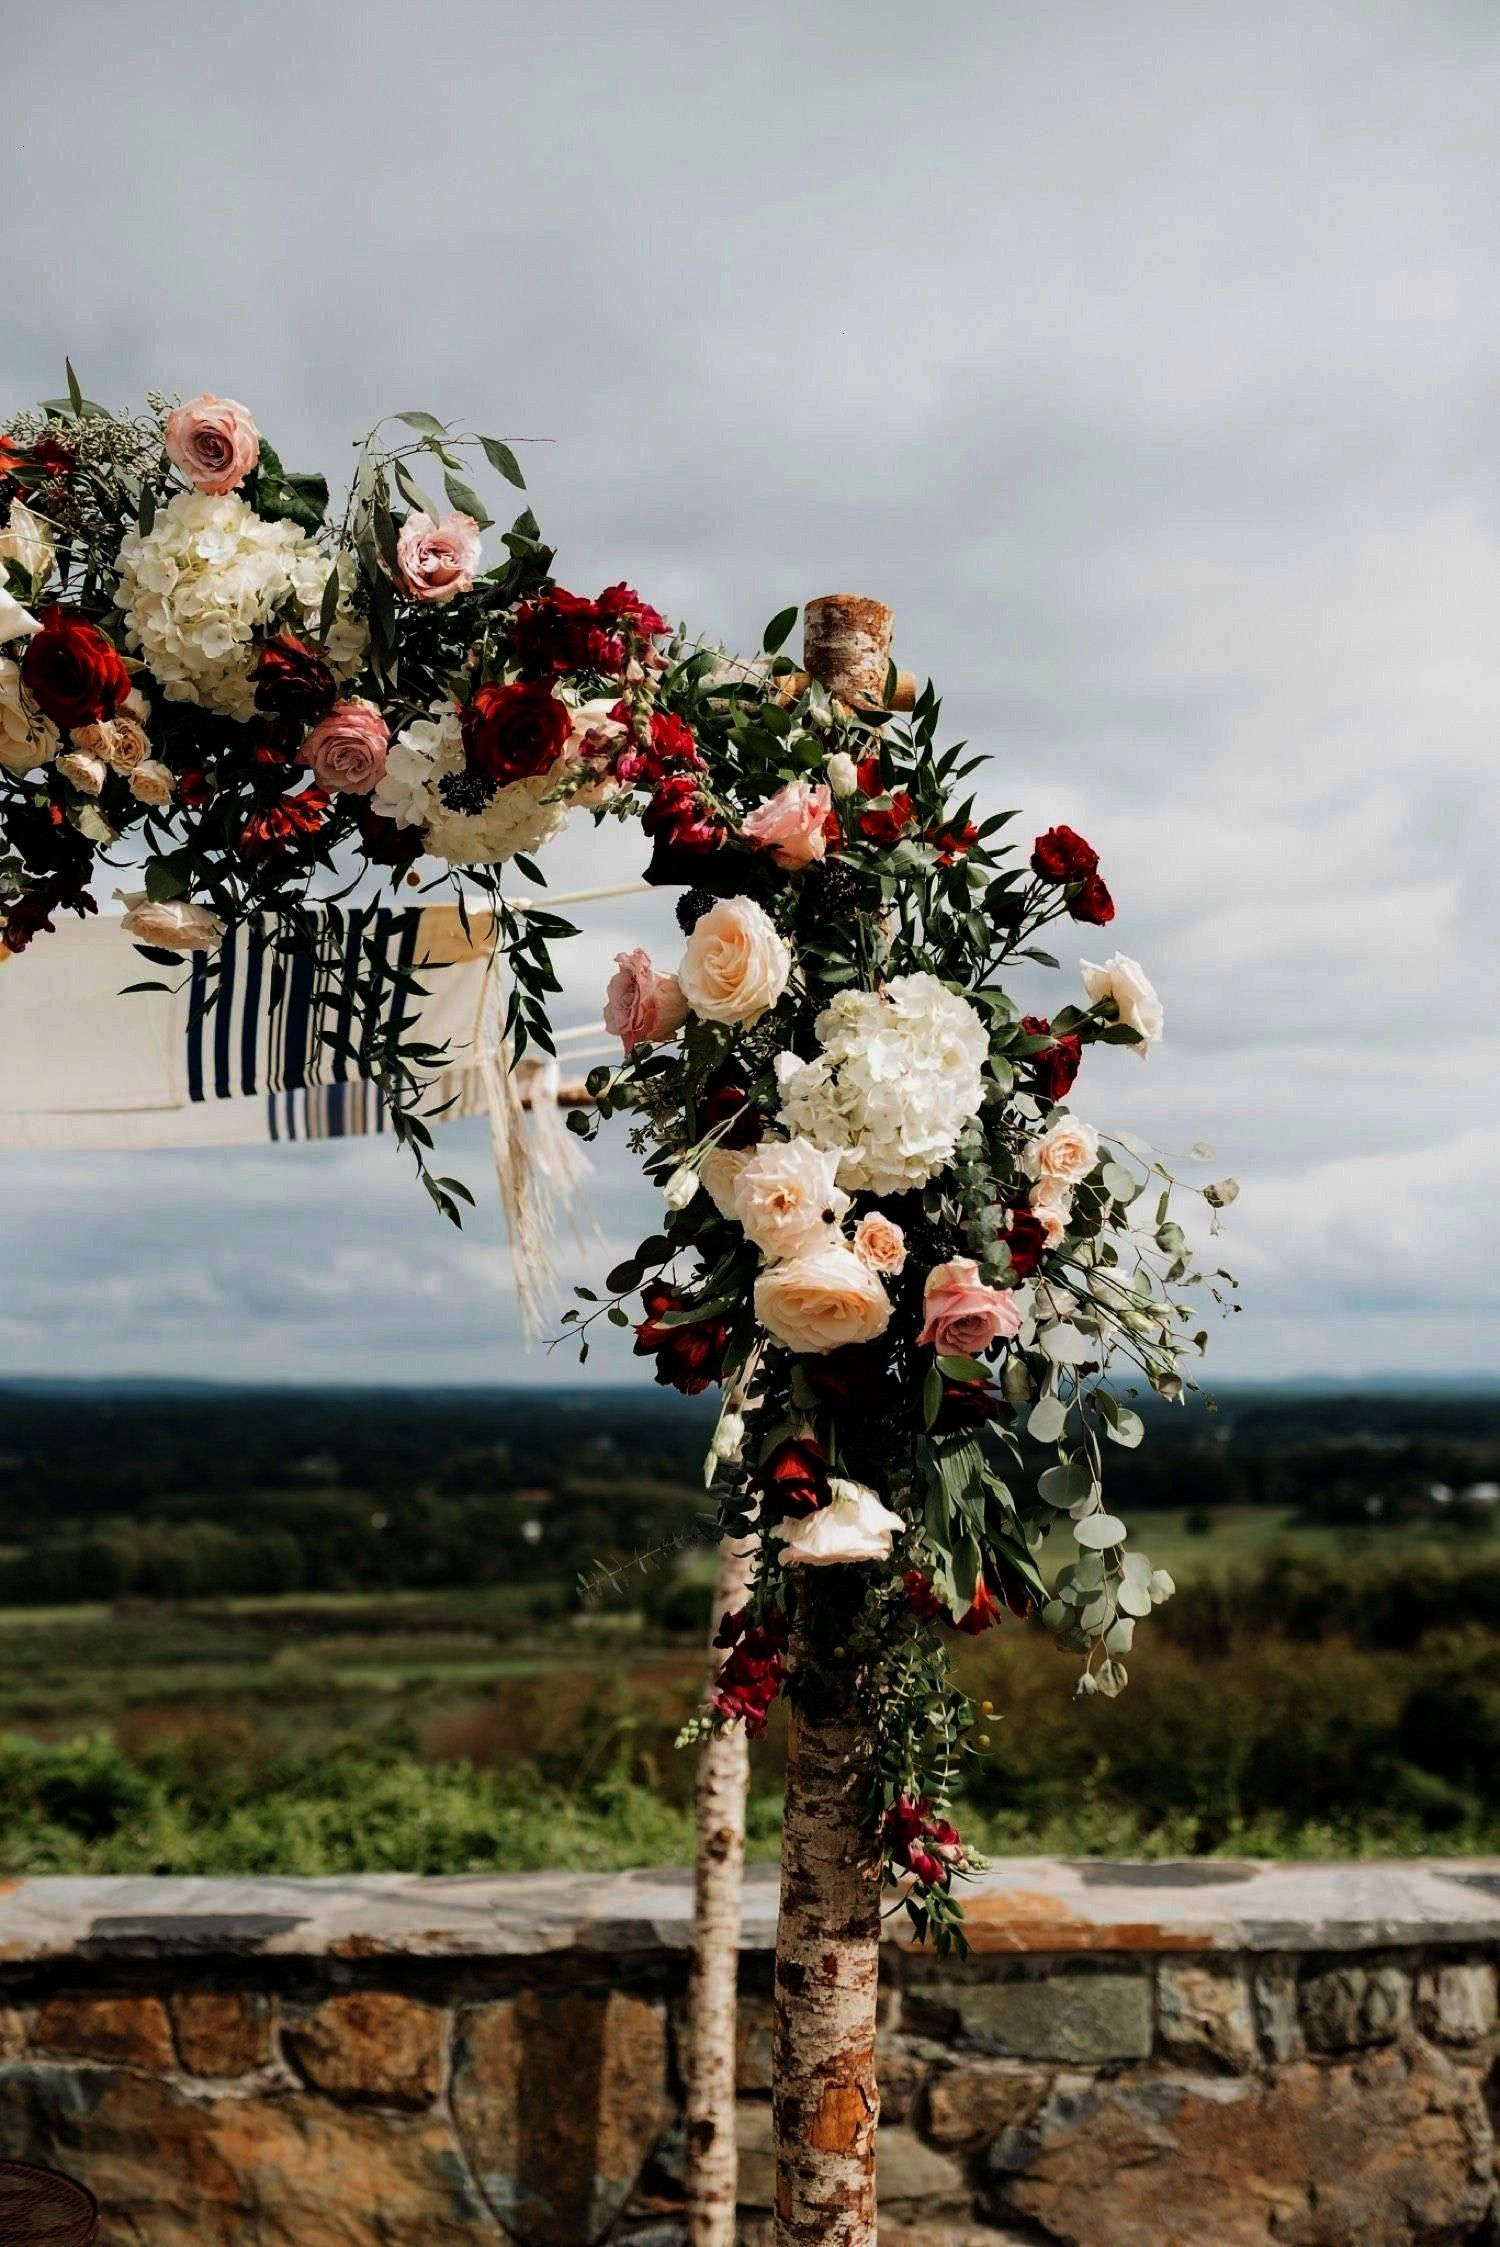 things you require to do in preparing your wedding is to select  Among the first things you require to do in preparing your wedding is to select the gowns You can Among t...